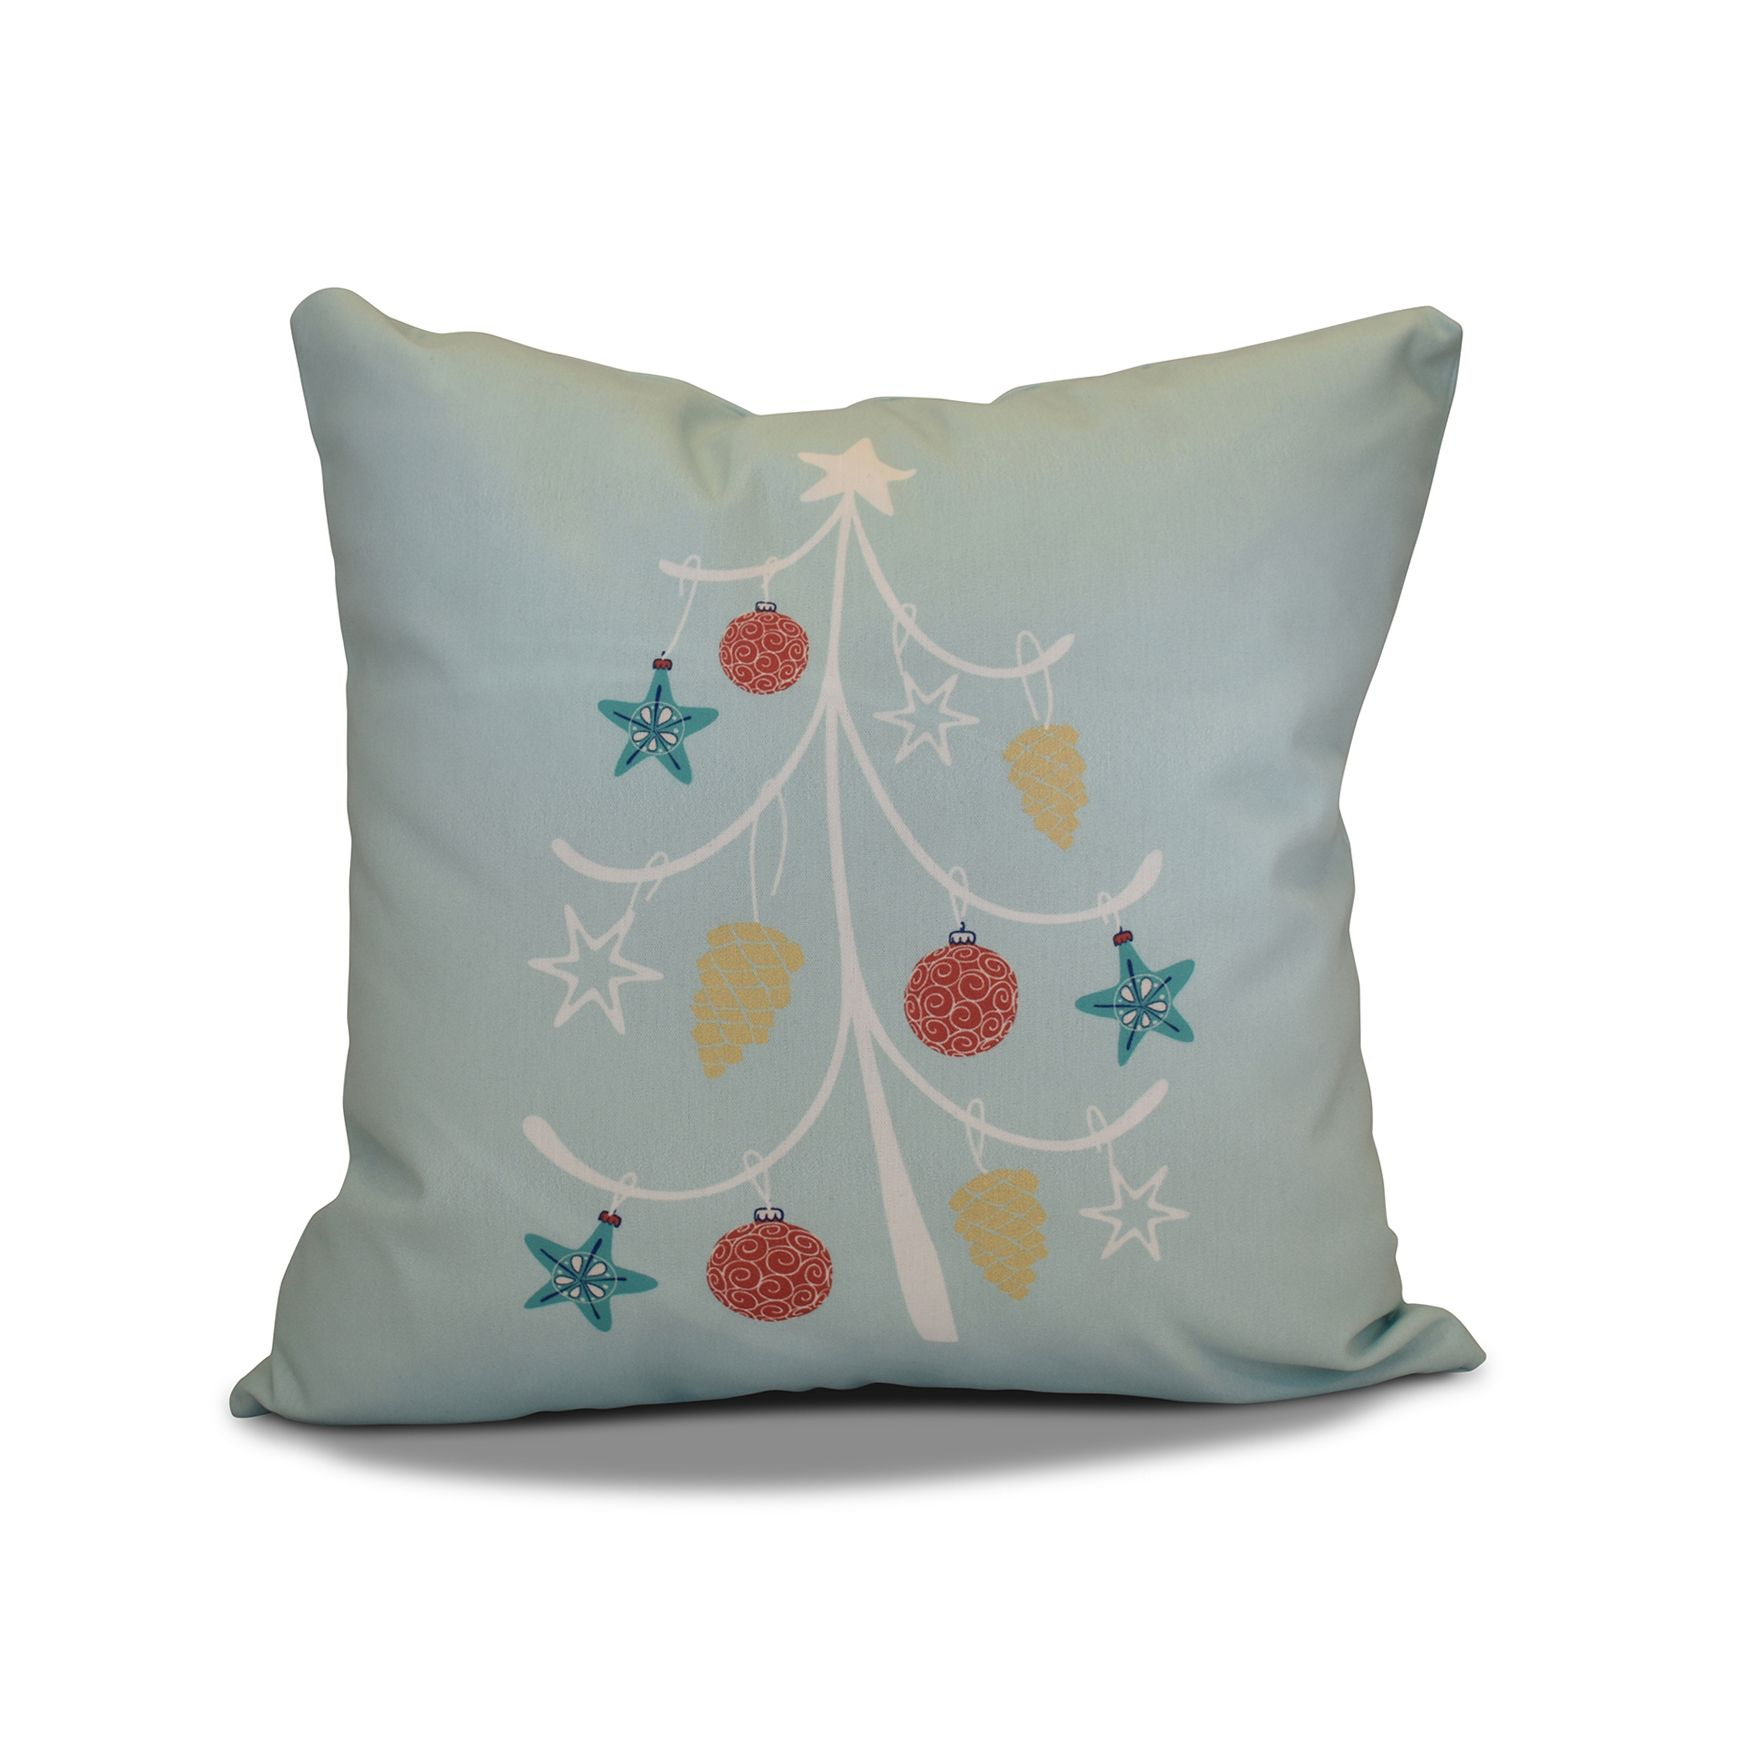 E by Design 18 x 18-inch Pinecone Tree Geometric Holiday Print Outdoor Pillow